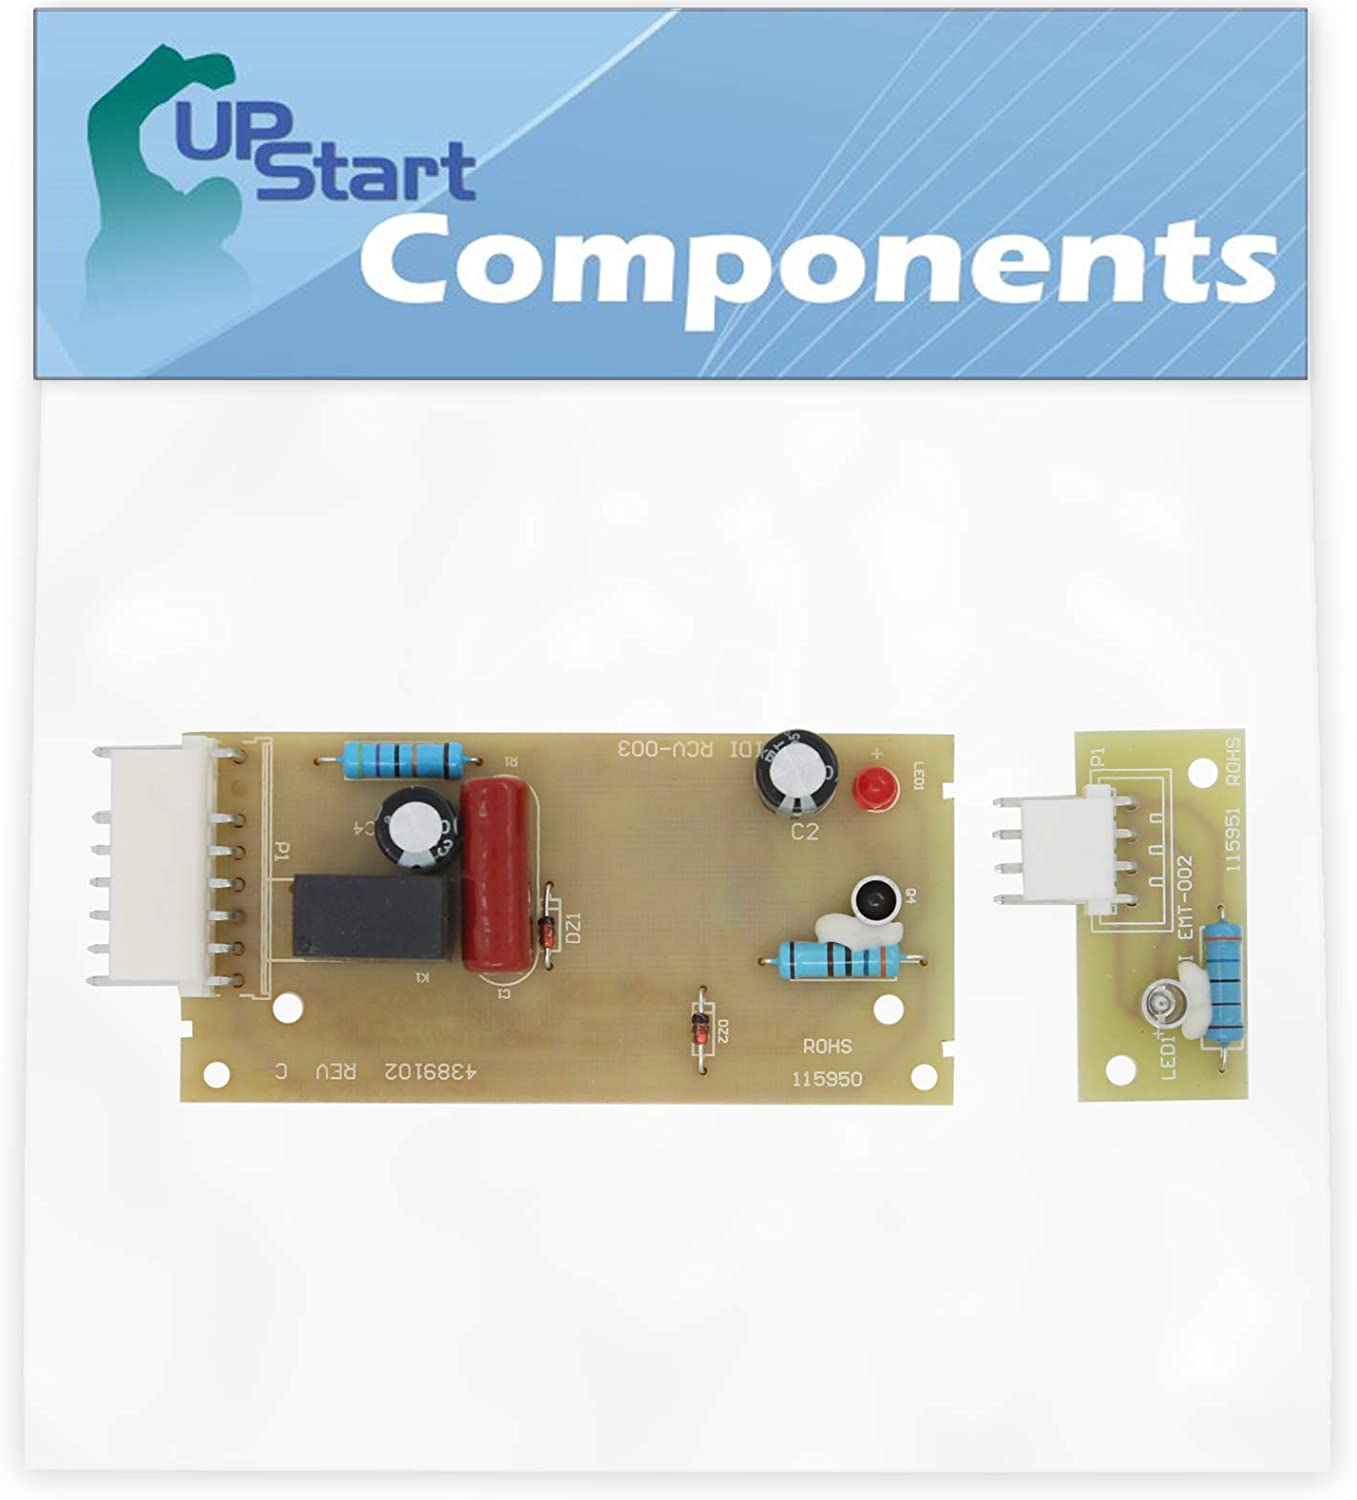 W10757851 Refrigerator Ice Level Control Board Replacement for Kenmore/Sears 10658976700 Refrigerator - Compatible with 4389102 Icemaker Emitter Sensor Control Board - UpStart Components Brand